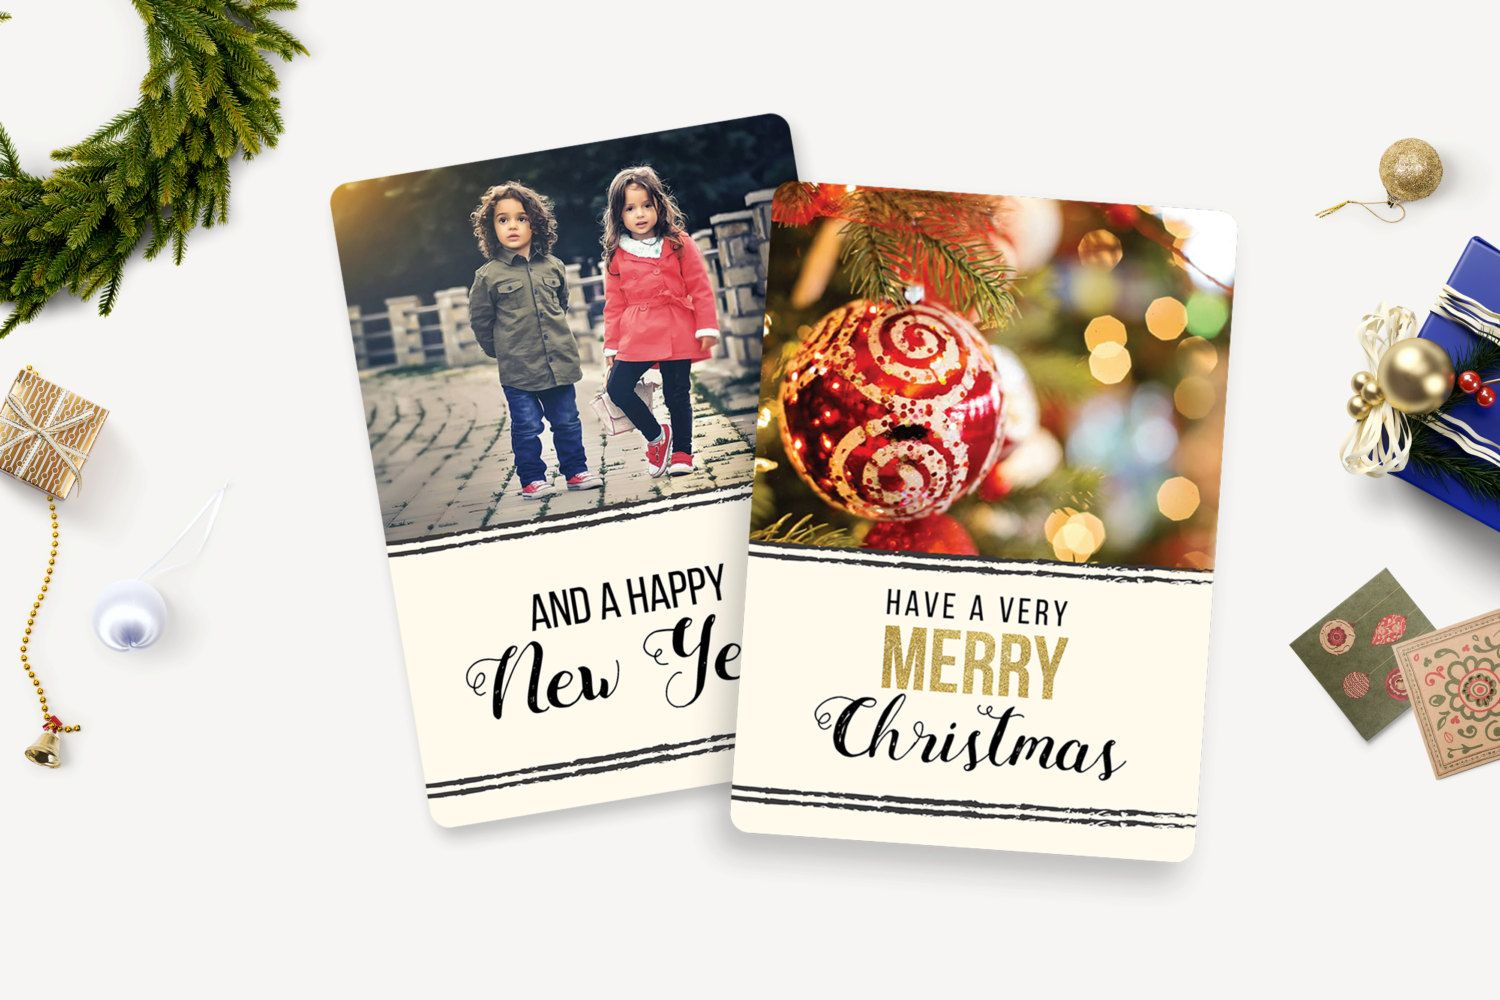 Christmas Card Template/Holiday Greeting Card/Photo Card/Photoshop and Elements Template/Photoshop template 5x7 flat card/Instant Download by 961TEMPLATEBOUTIQUE on Etsy